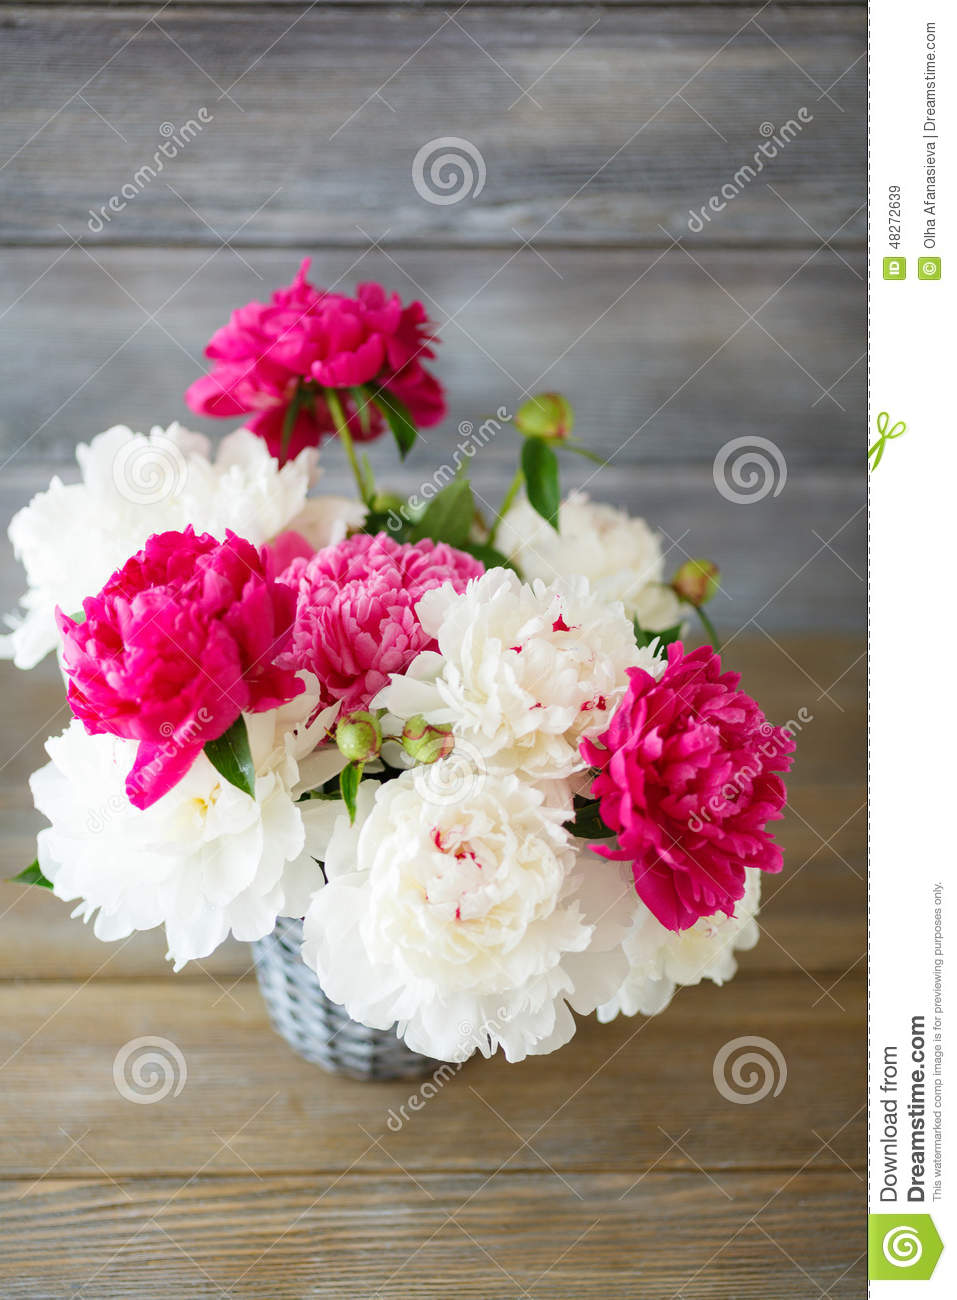 bouquet de pivoines dans le vase photo stock image 48272639. Black Bedroom Furniture Sets. Home Design Ideas